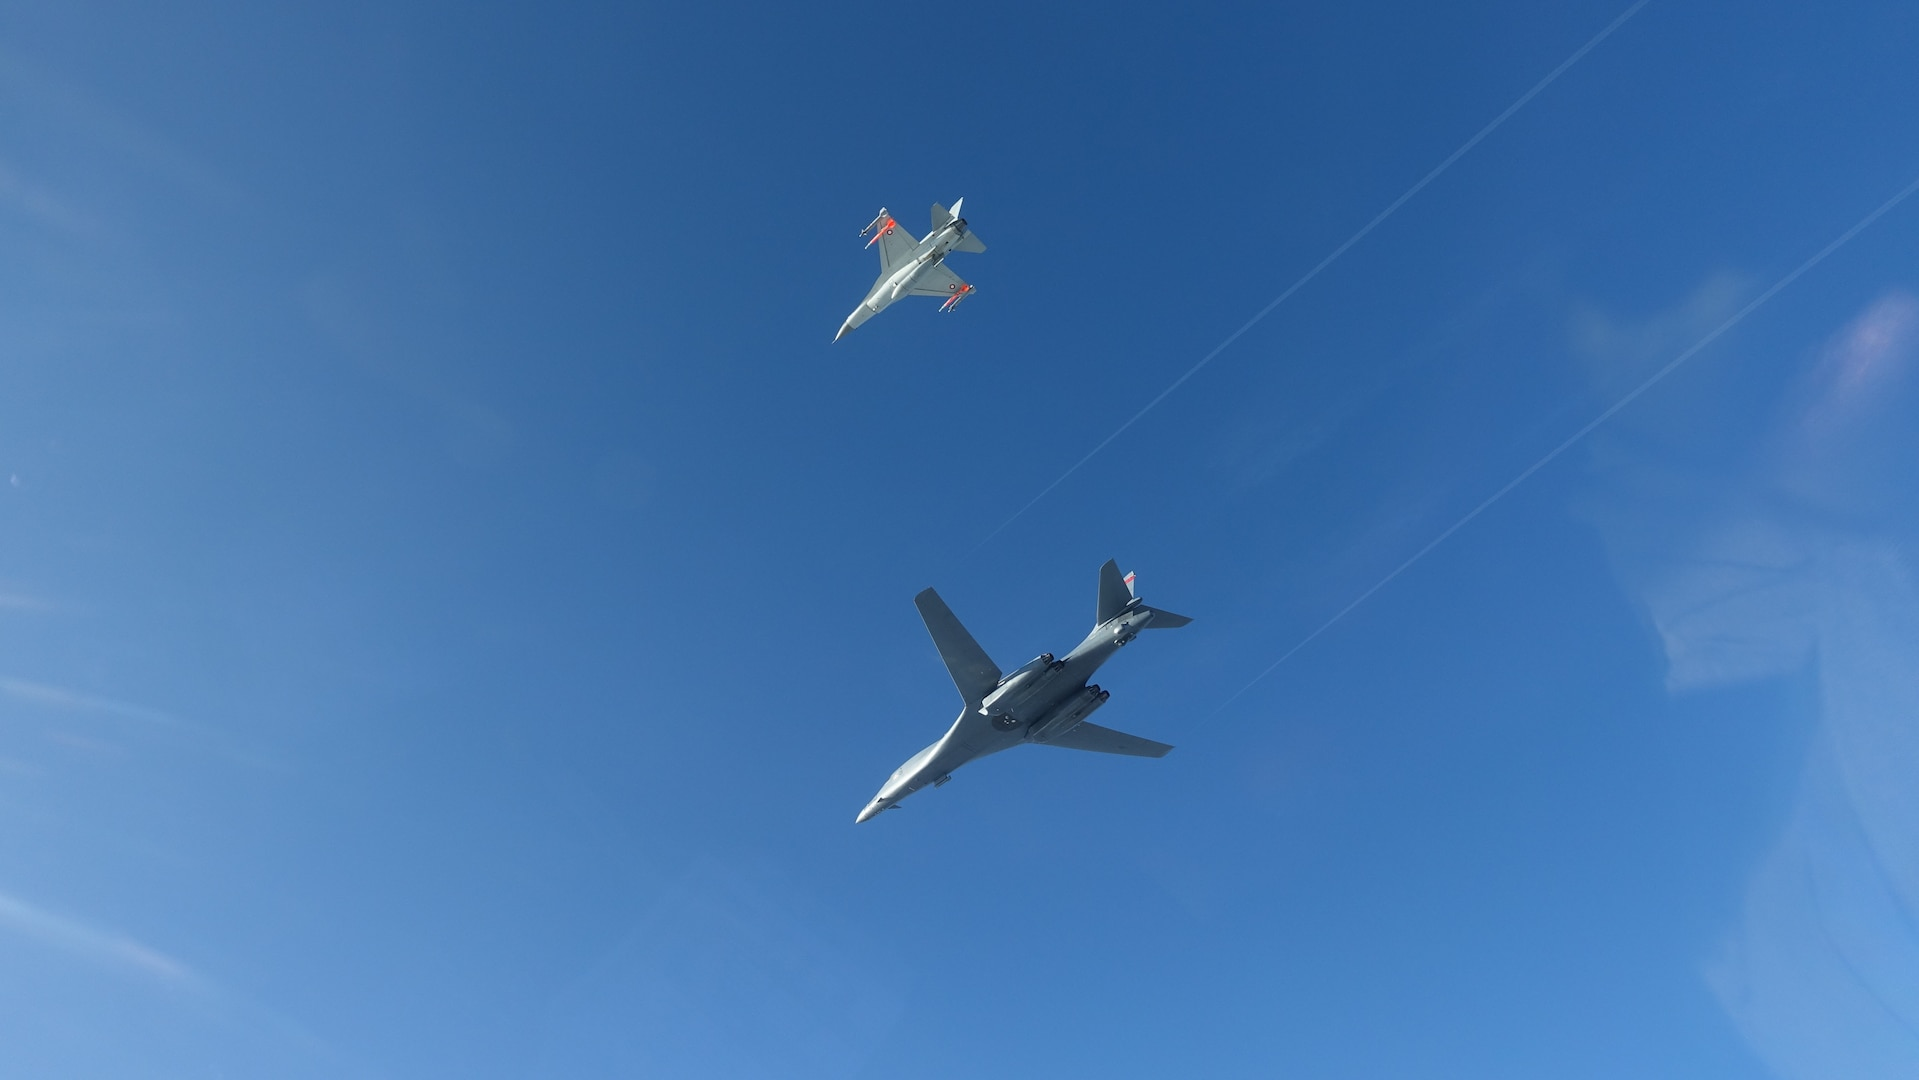 Military aircraft flying in the sky